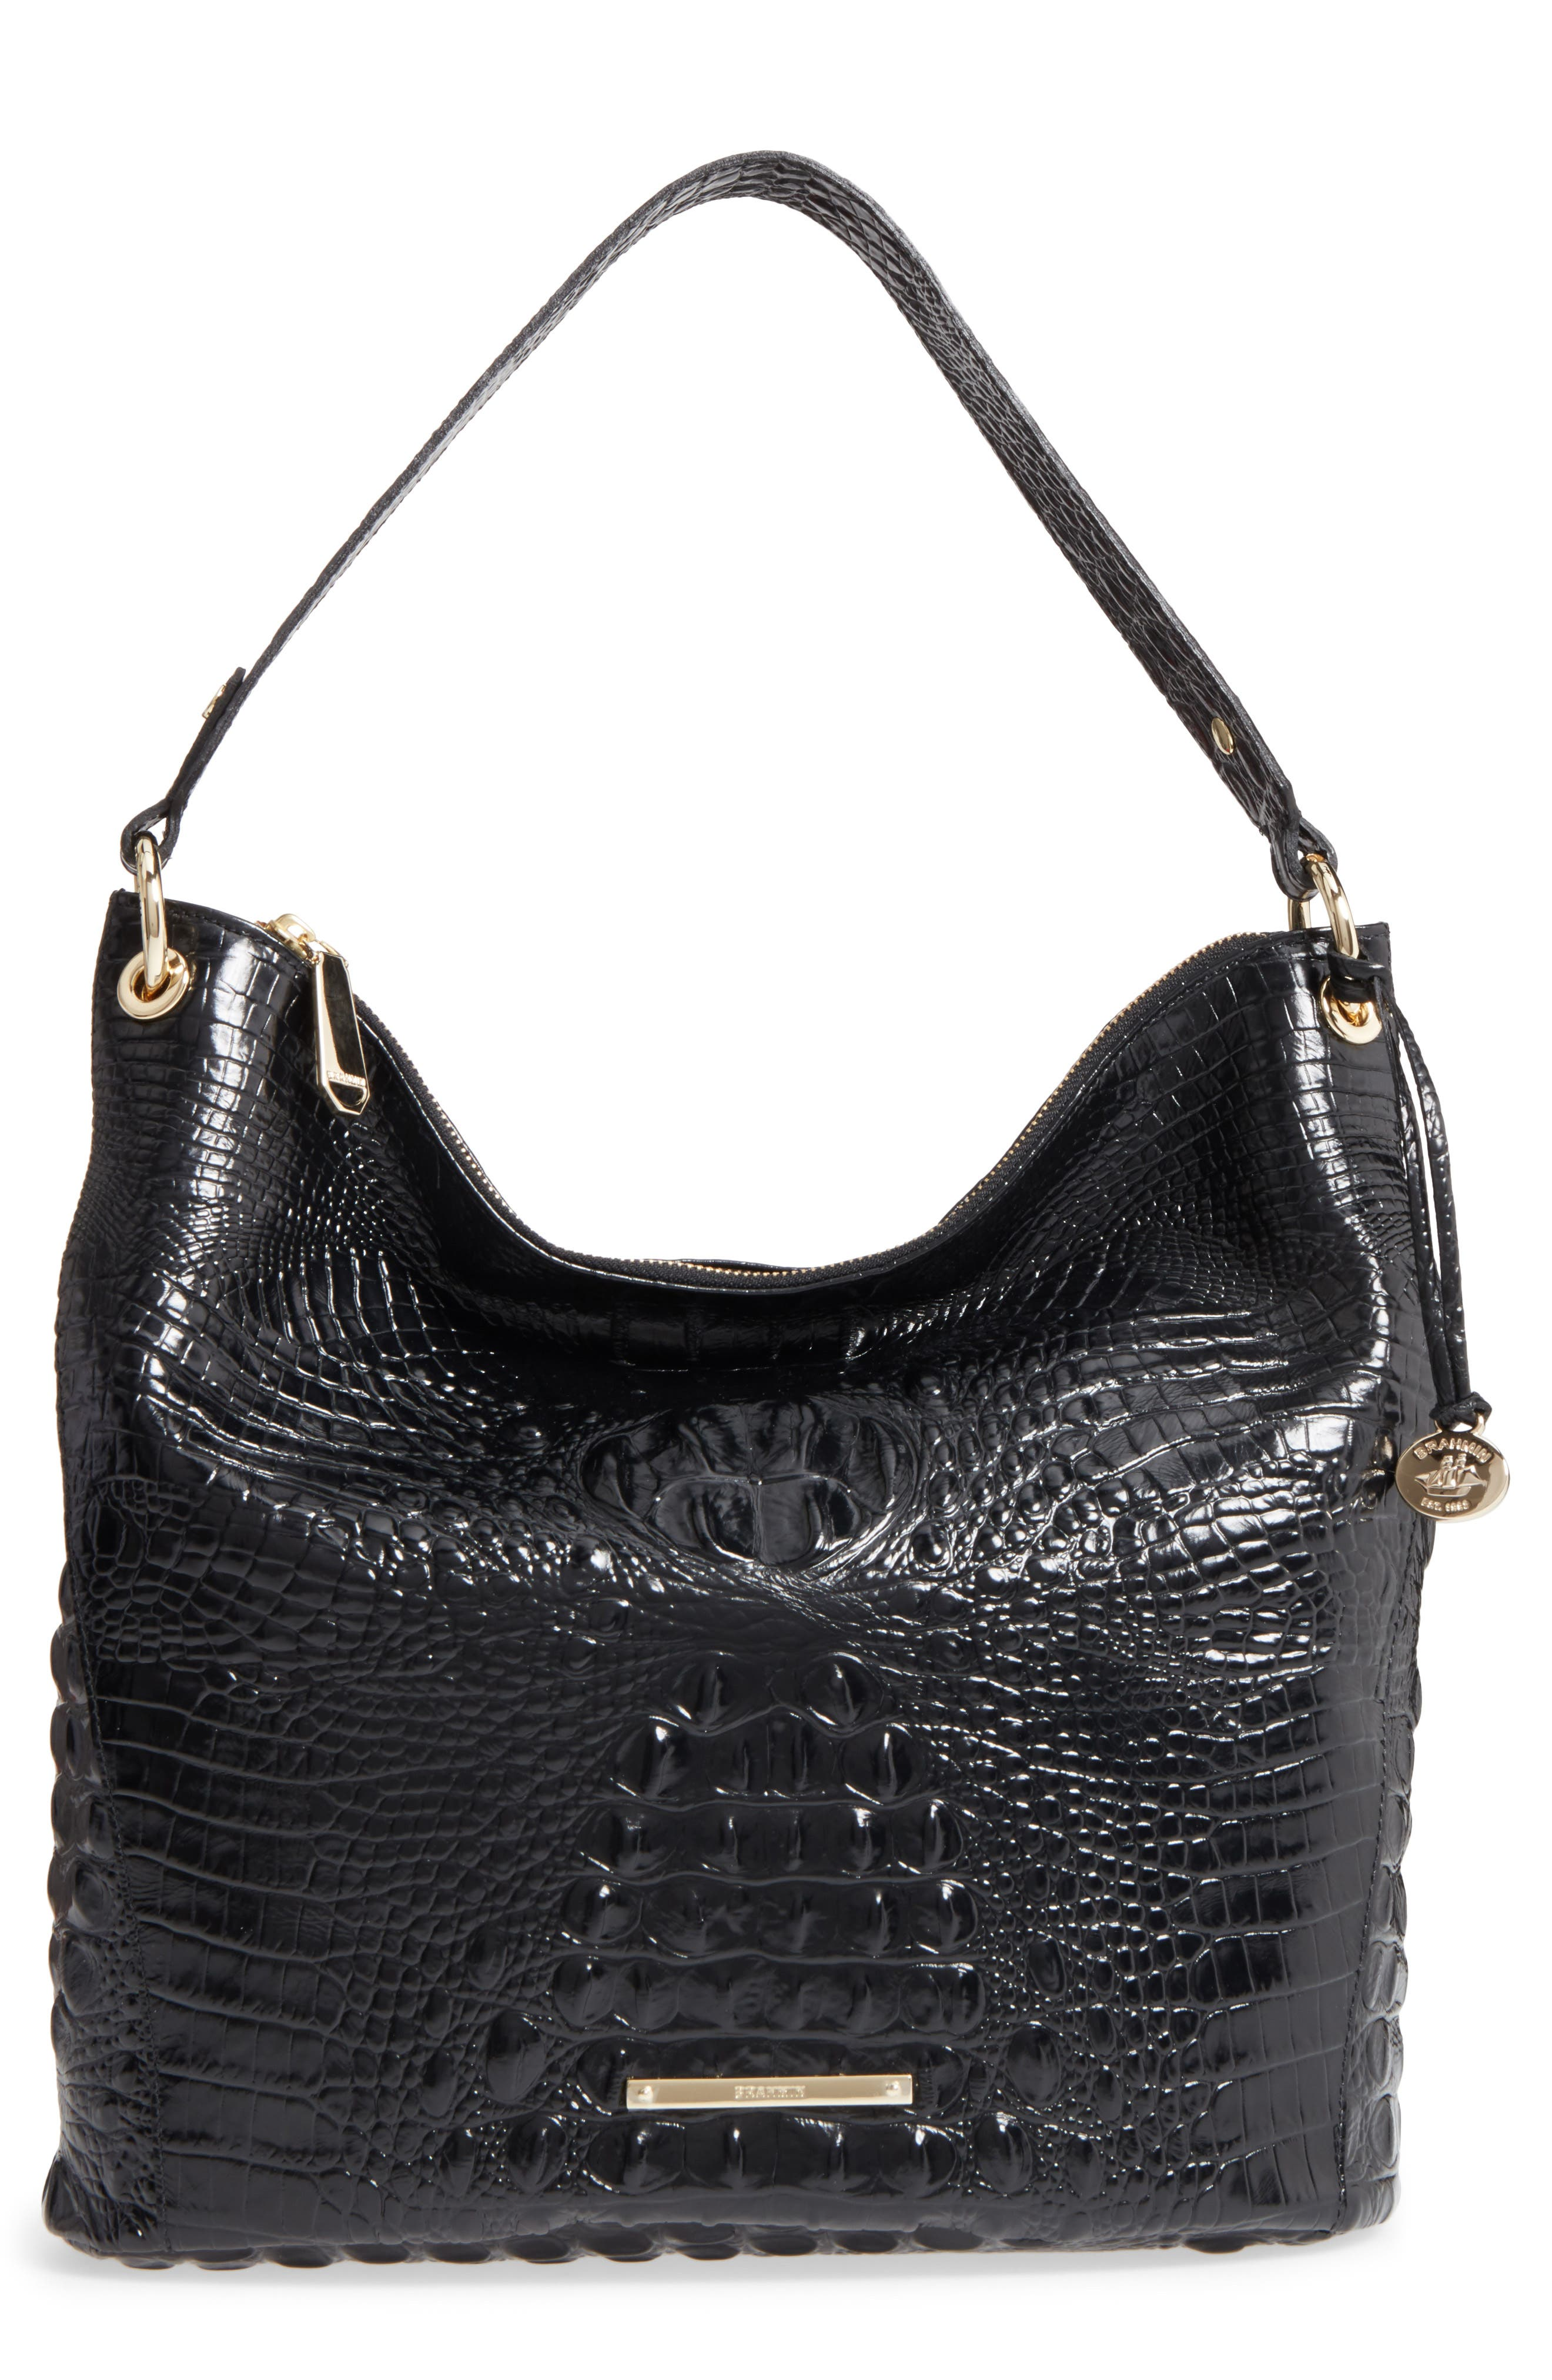 Melbourne Sevi Croc Embossed Leather Hobo,                             Main thumbnail 1, color,                             001